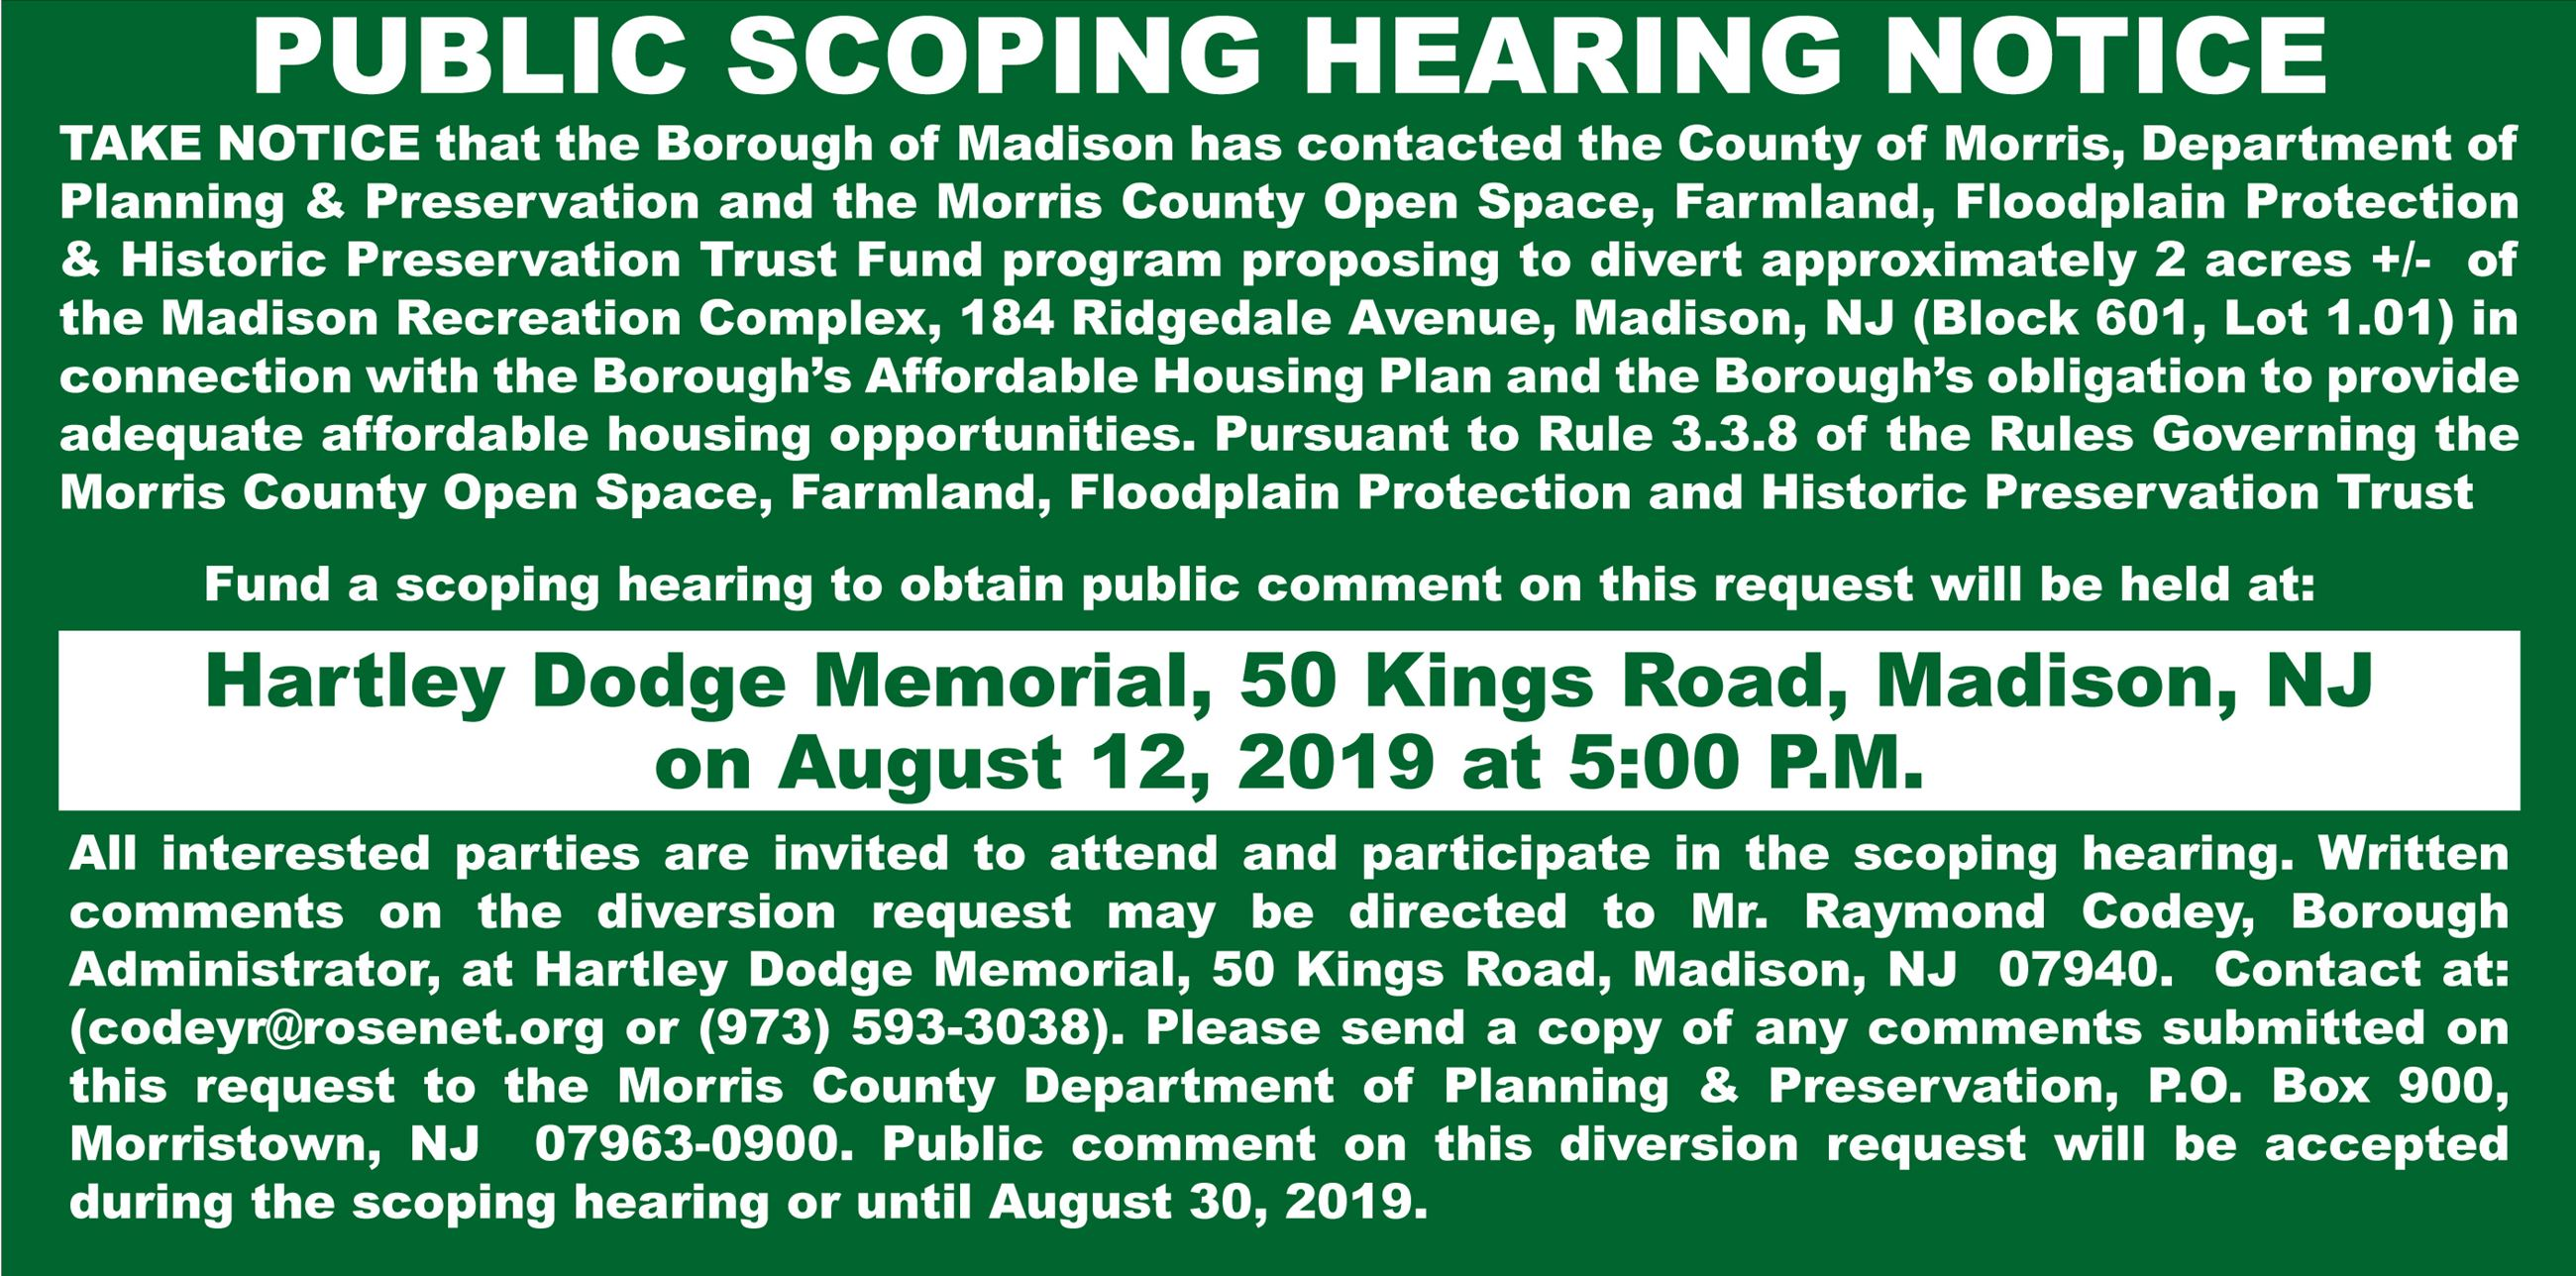 Borough-of-madison--public-scoping-hearing-notice